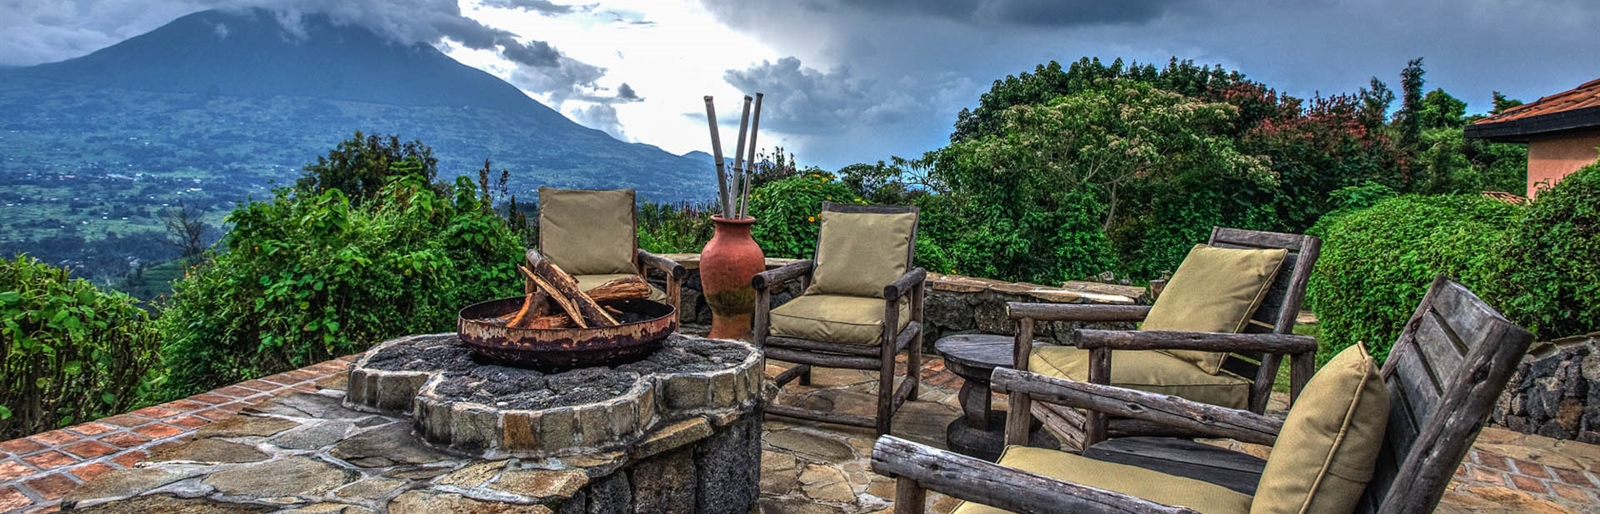 Virunga Lodge in the Volcanoes National Park in Rwanda